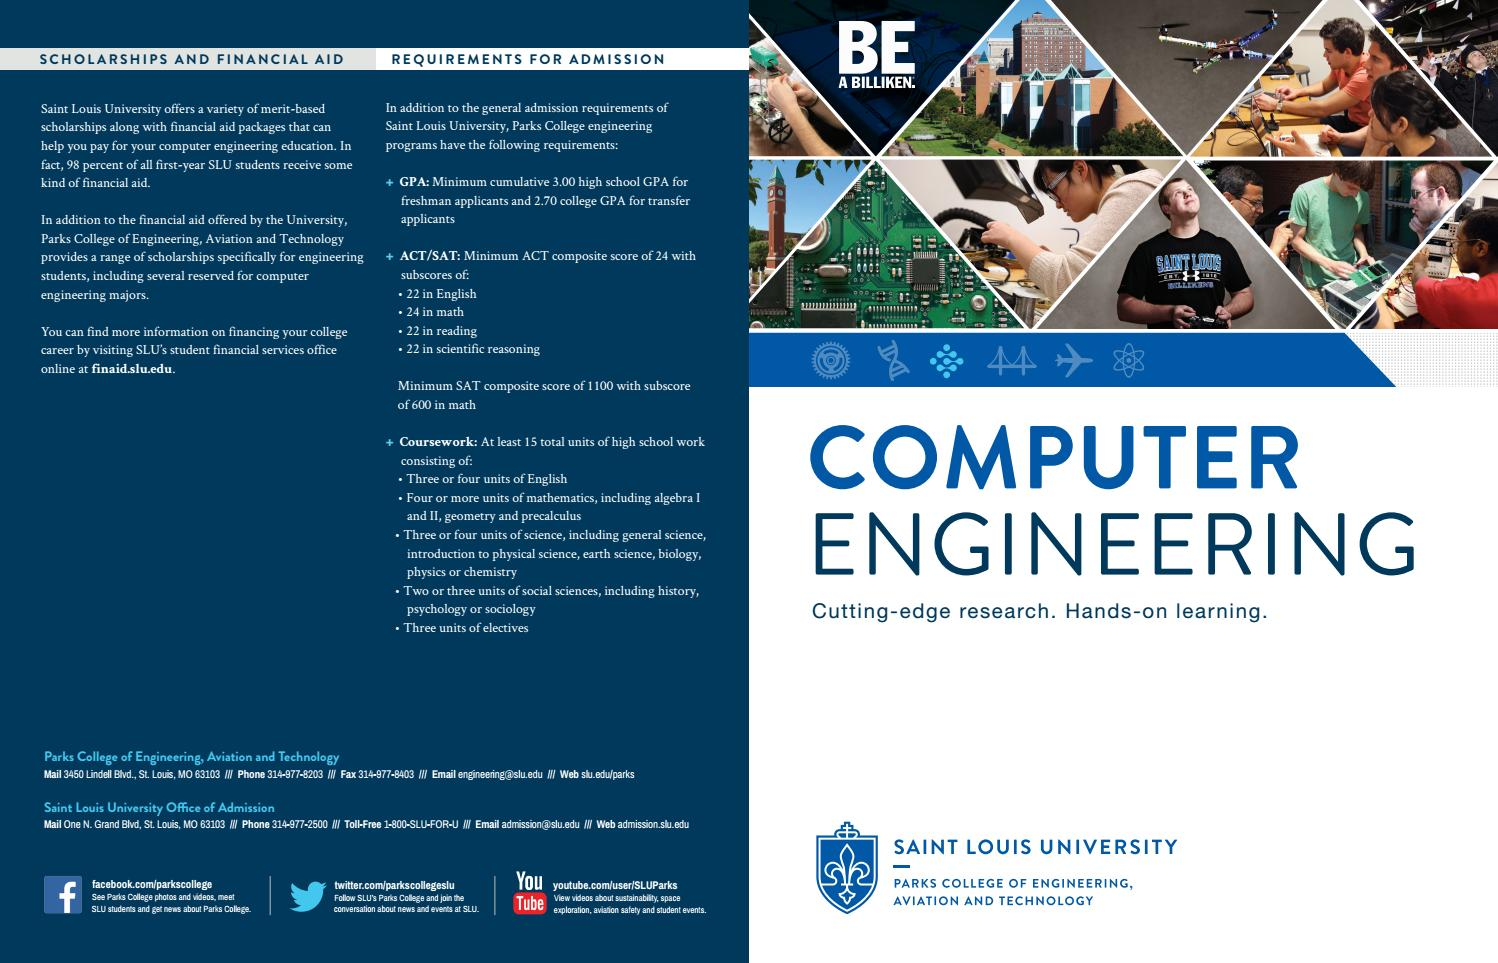 Department of Computer Engineering Brochure by Parks College of Engineering, Aviation and ...